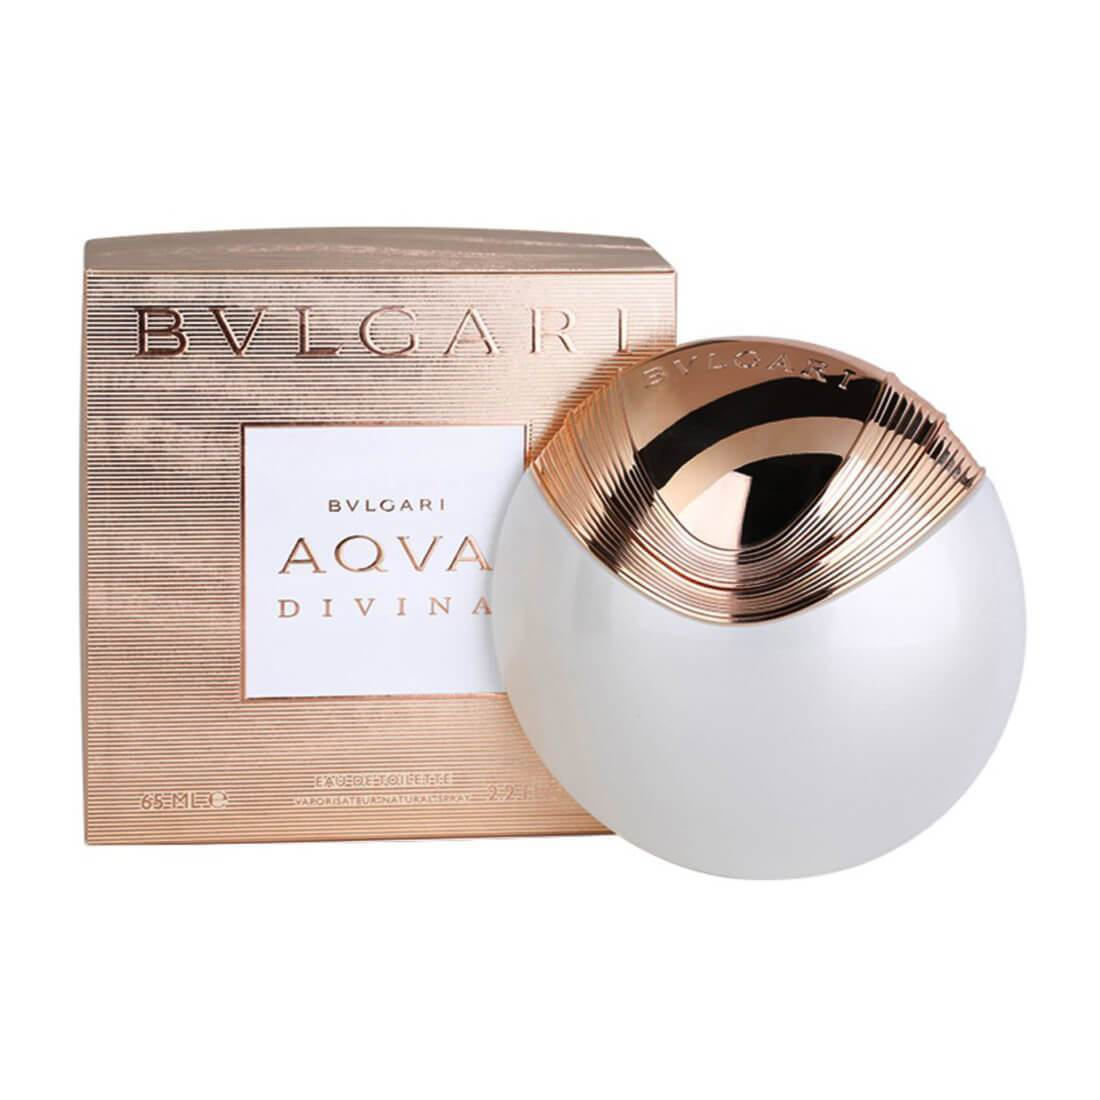 Bvlgari Aqua Divina EDT Perfume For Women - 65ml